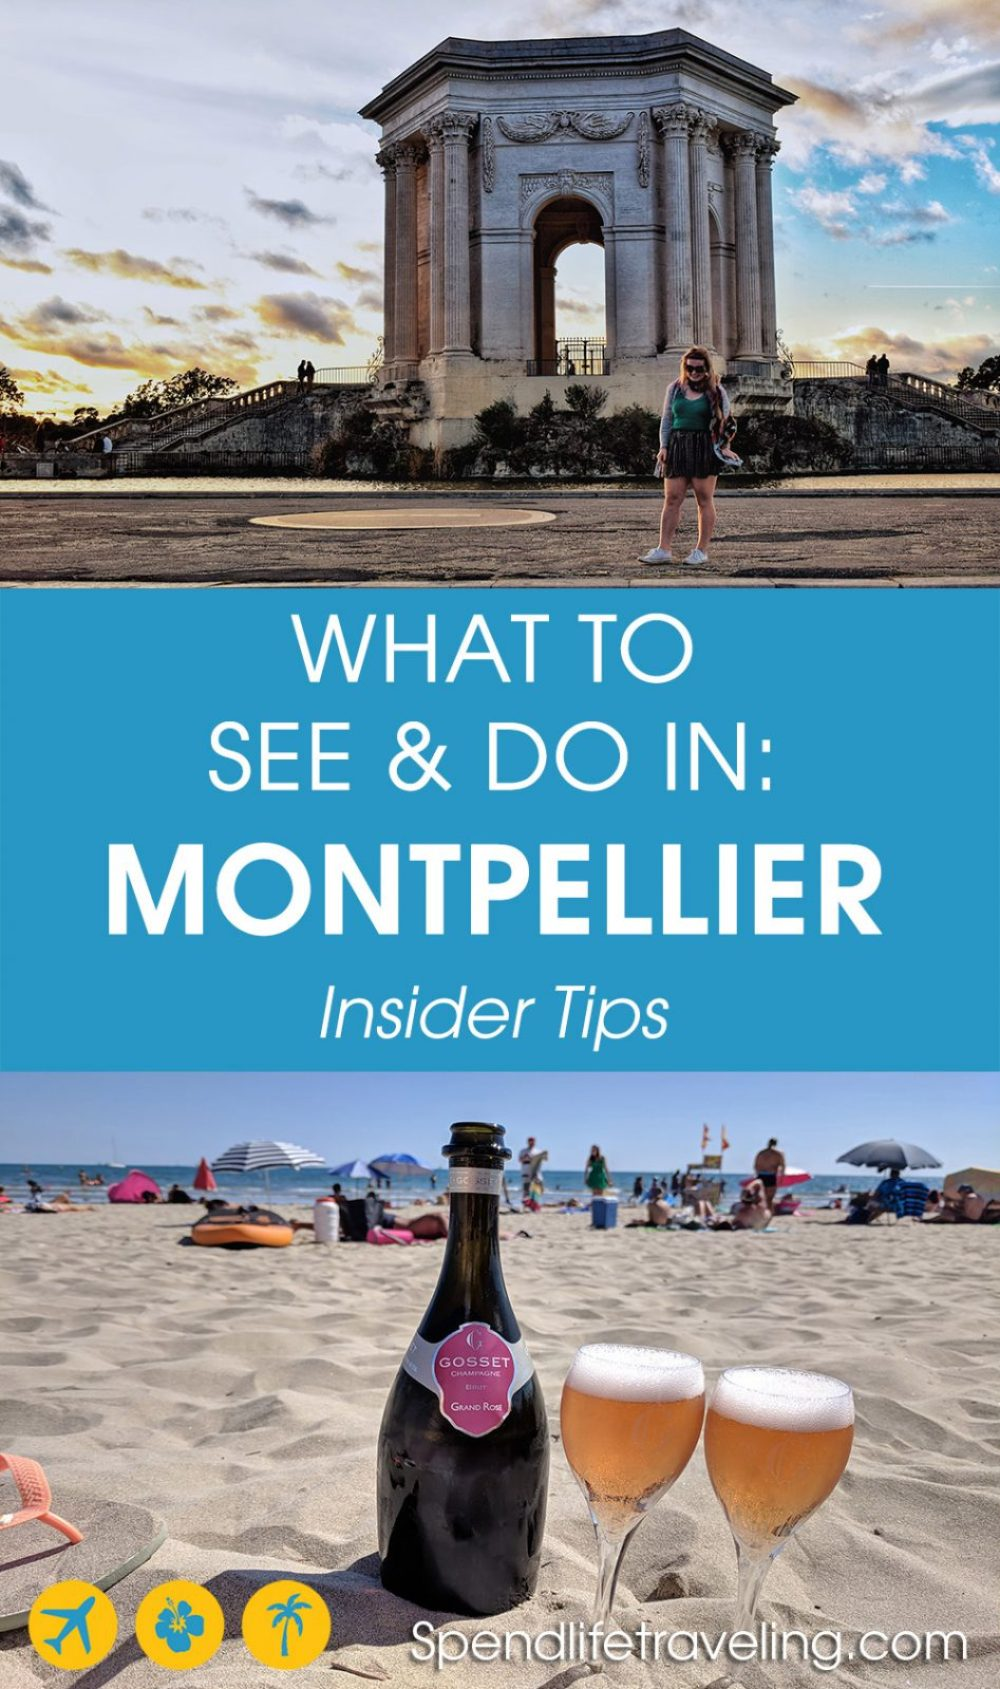 What to see & do, where to eat & drink, and where to stay in #Montpellier - a beautiful city in the South of France. #visitFrance #traveltips #citybreak #weekendbreak #travelFrance